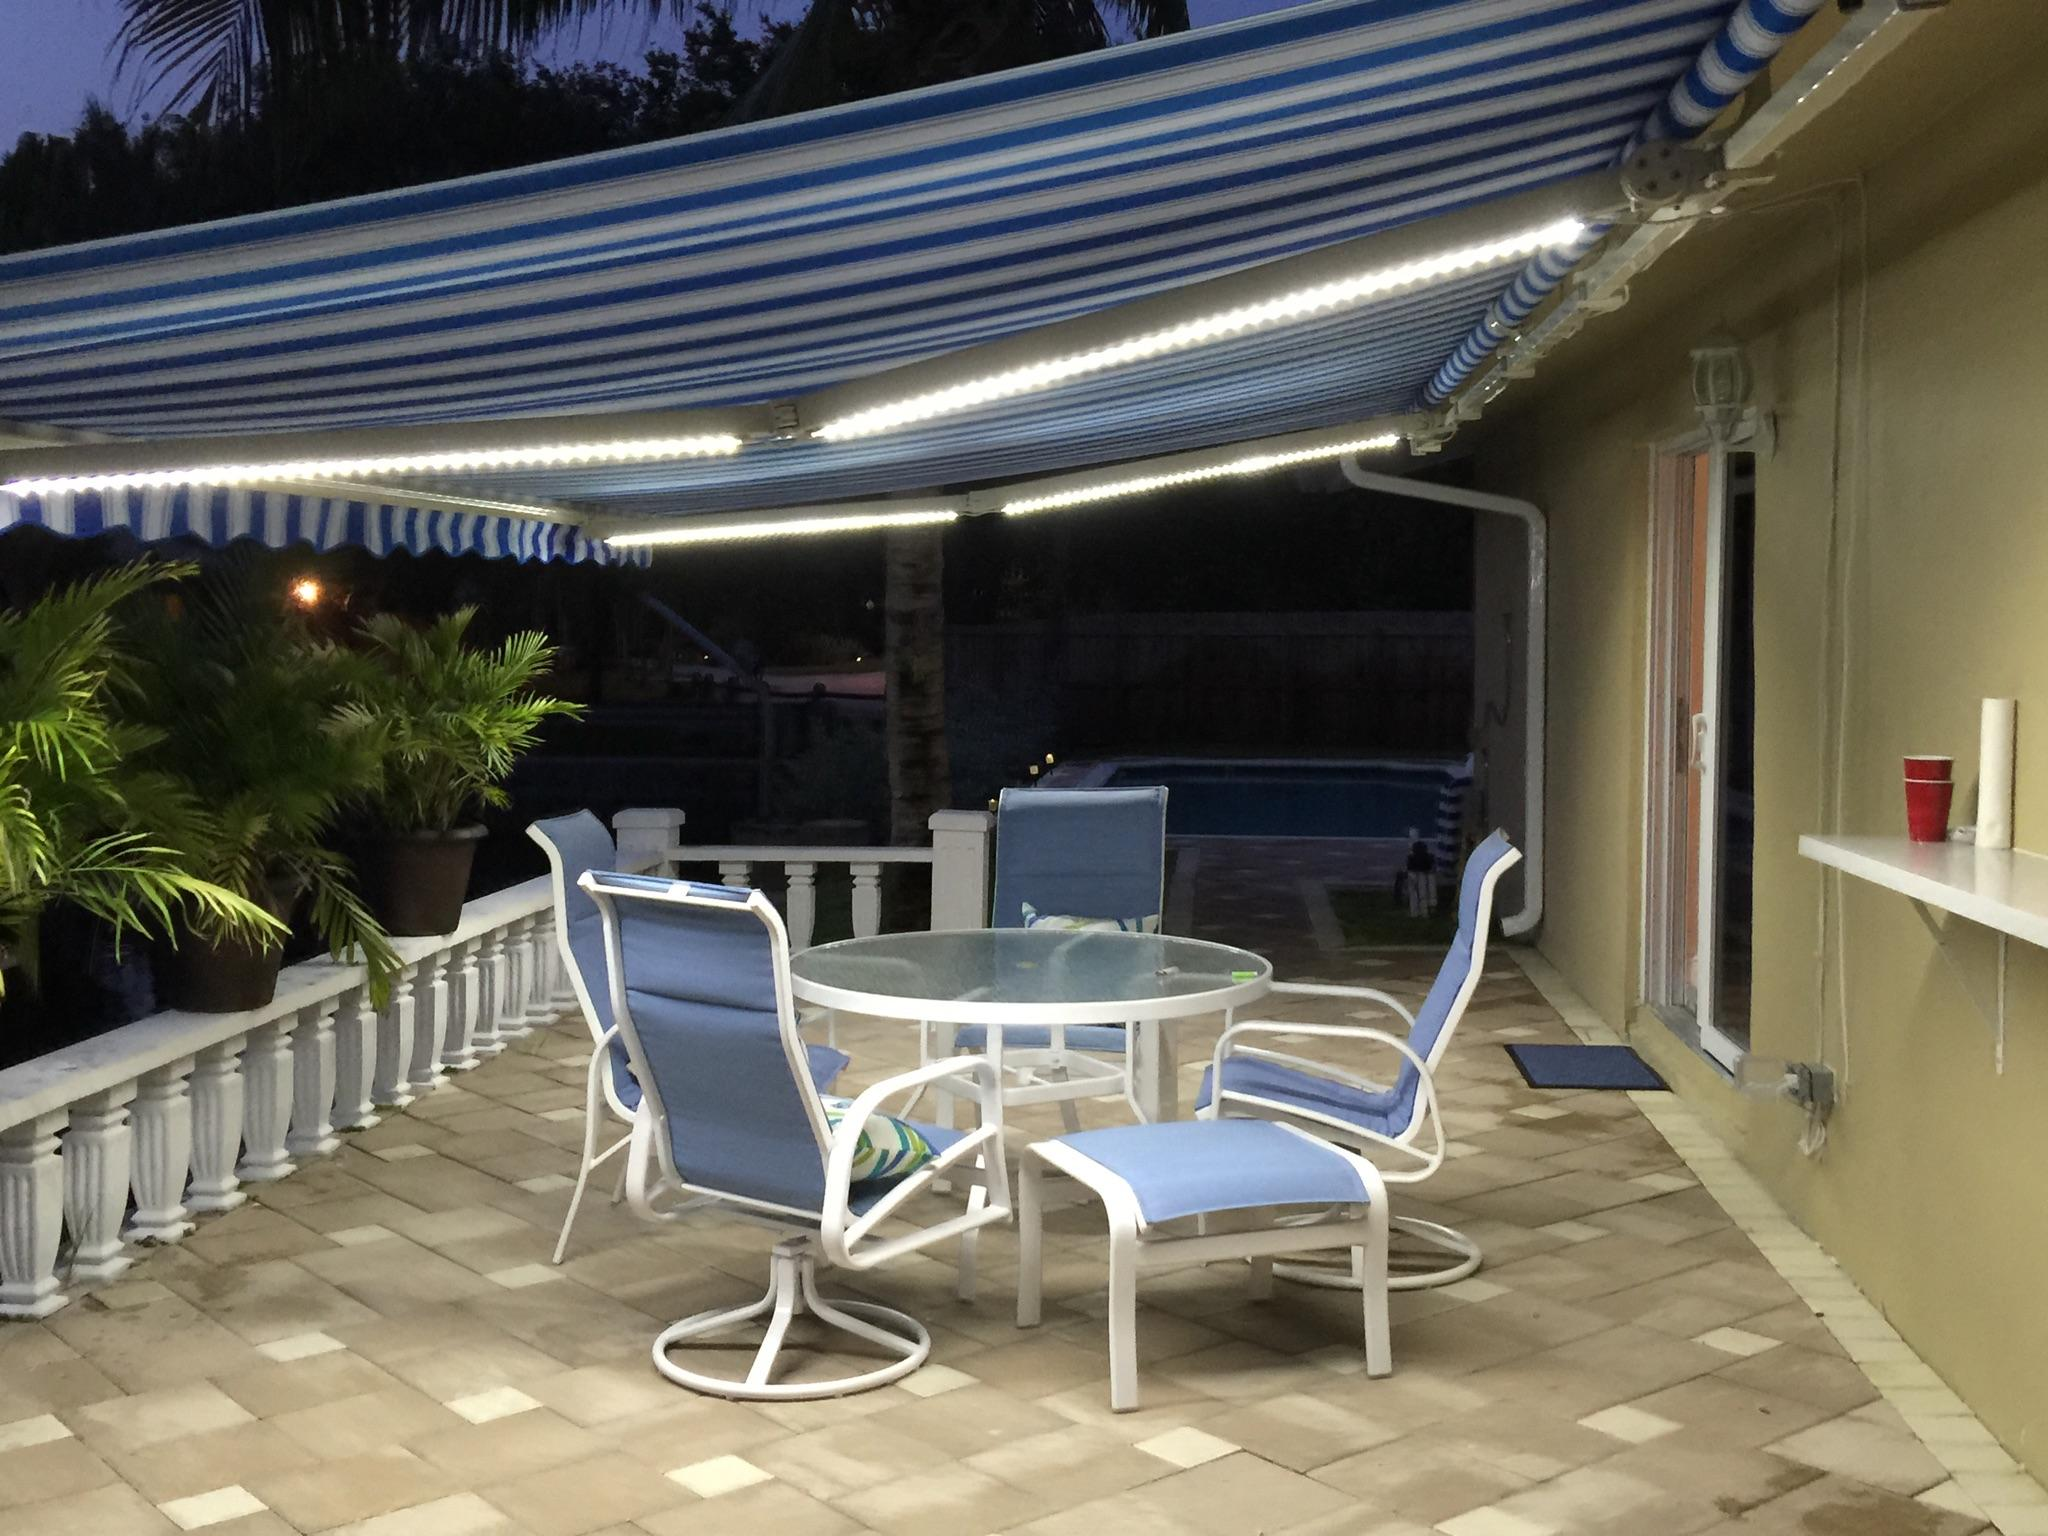 retractable sunsetter awning on a fort